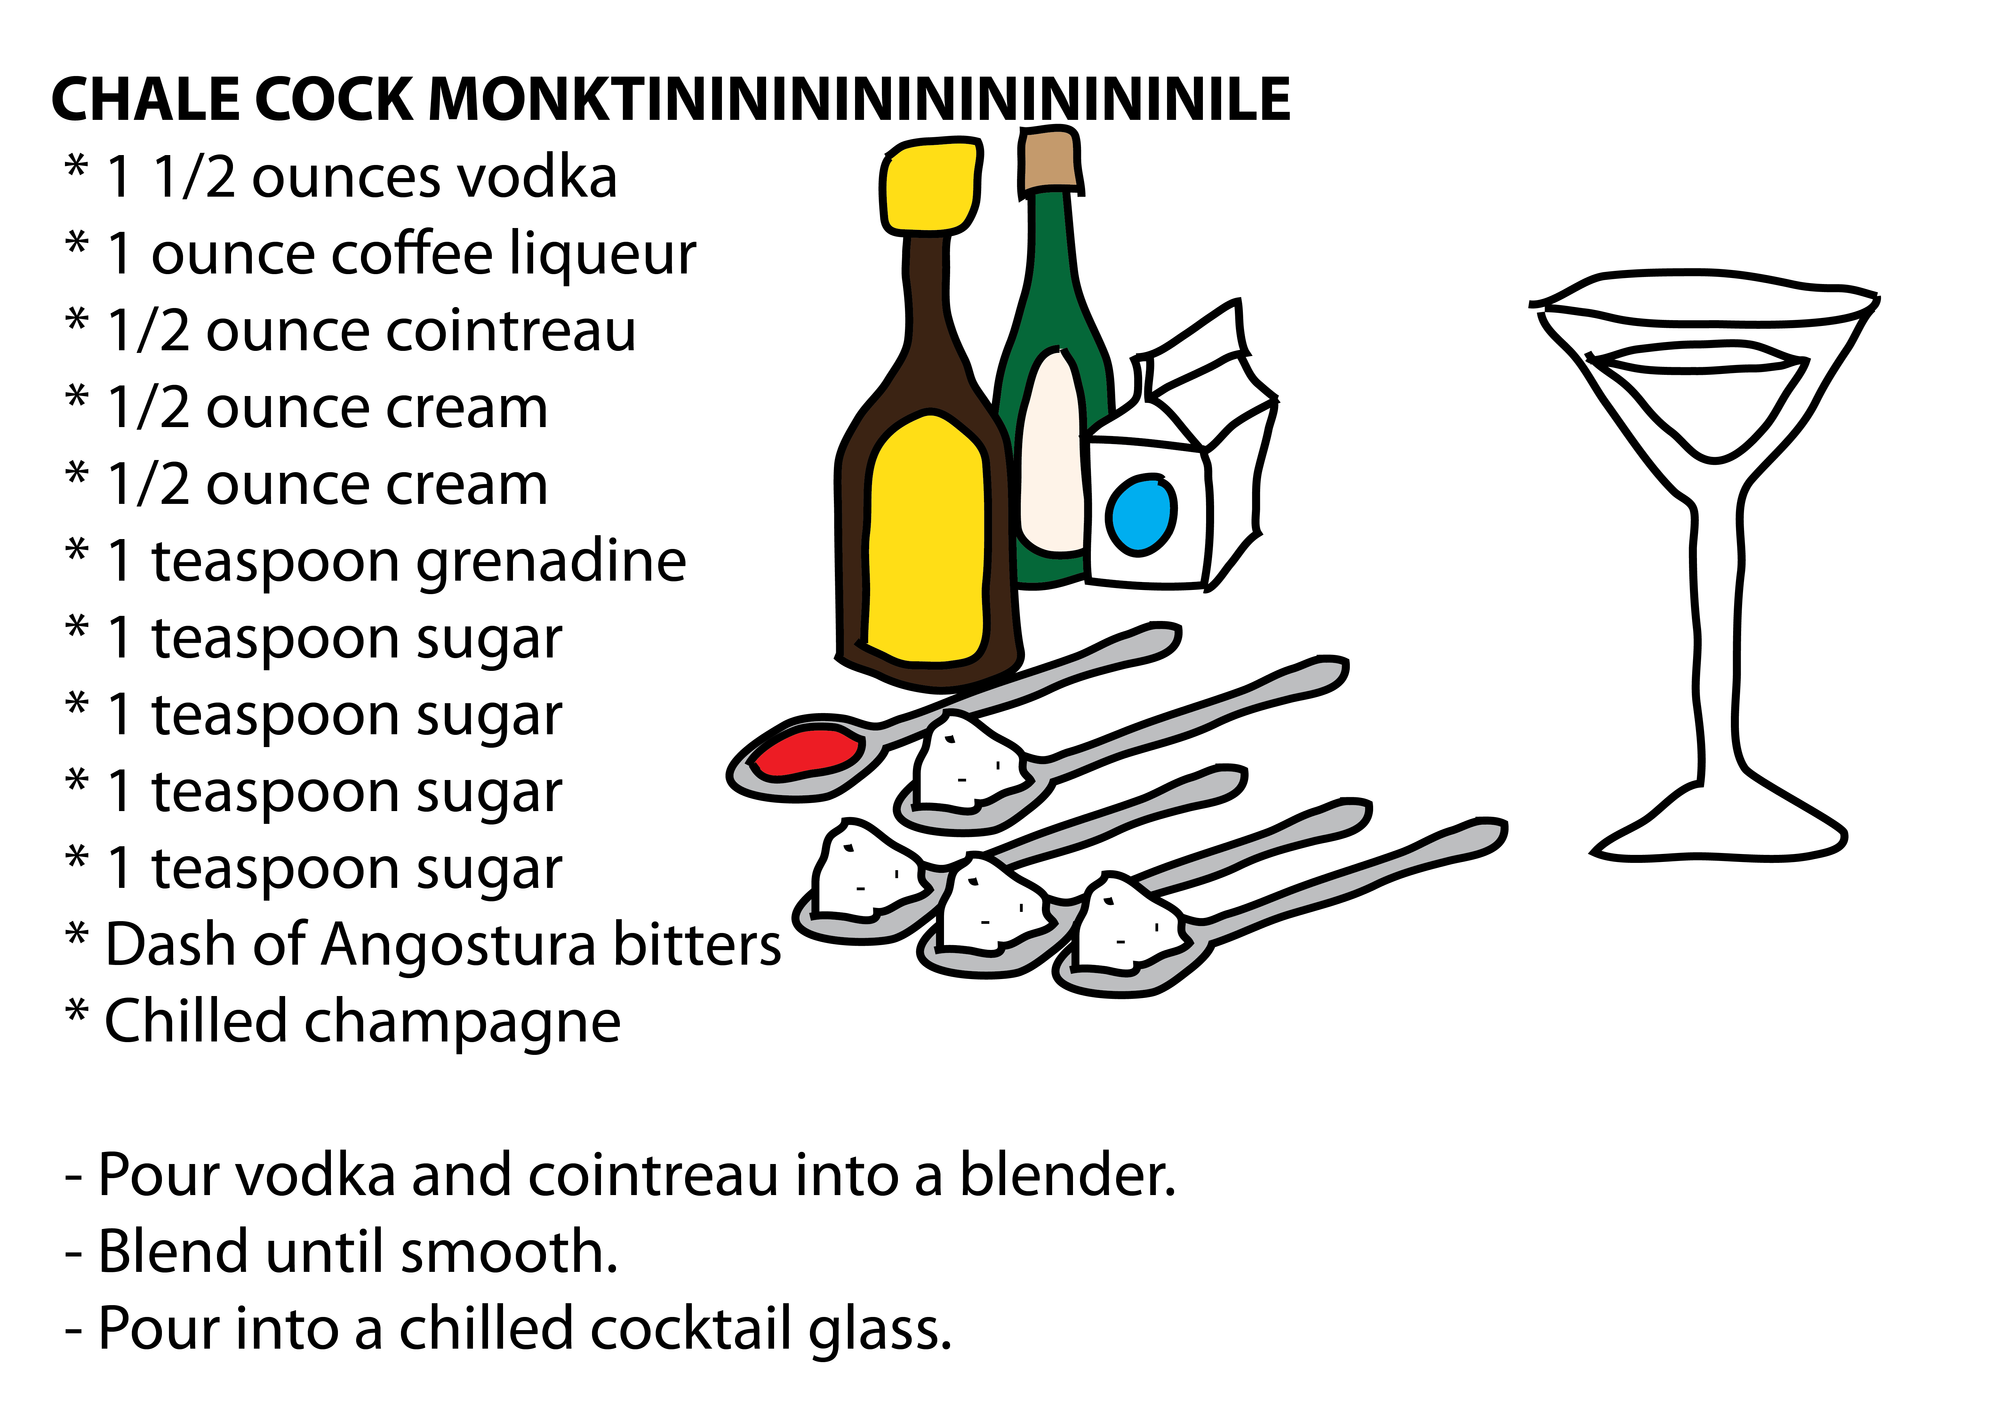 CHALE COCK MONKTINININININININININILE  * 1 1/2 ounces vodka  * 1 ounce coffee liqueur  * 1/2 ounce cointreau  * 1/2 ounce cream  * 1/2 ounce cream  * 1 teaspoon grenadine  * 1 teaspoon sugar  * 1 teaspoon sugar  * 1 teaspoon sugar  * 1 teaspoon sugar  * Dash of Angostura bitters  * Chilled champagne   - Pour vodka and cointreau into a blender.  - Blend until smooth.  - Pour into a chilled cocktail glass.